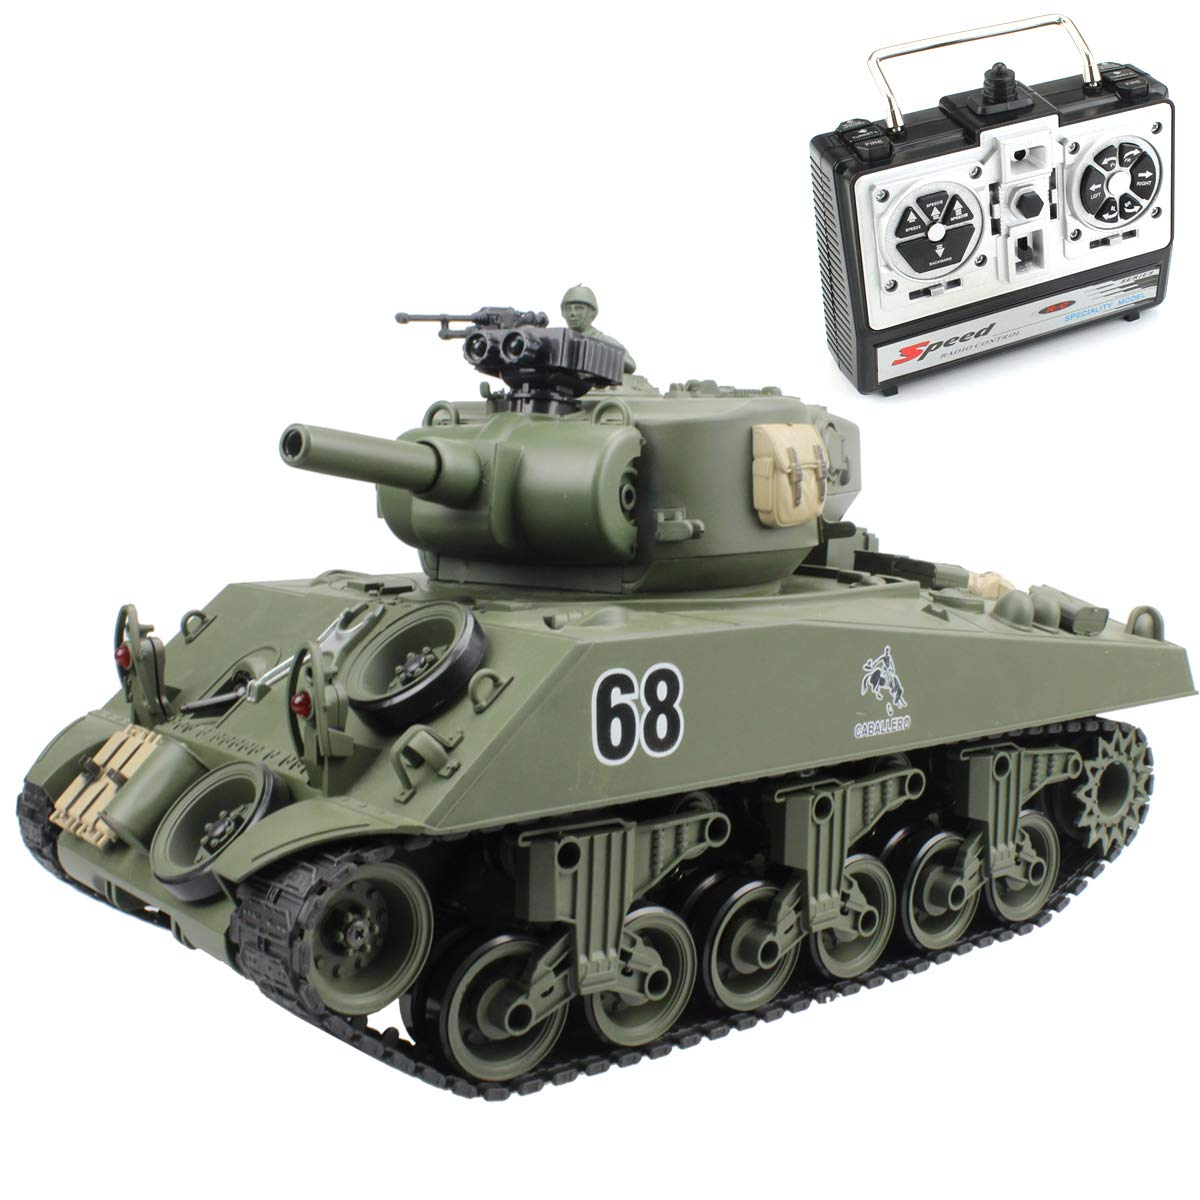 Top 9 Best Remote Control Tanks Battle Reviews in 2020 6